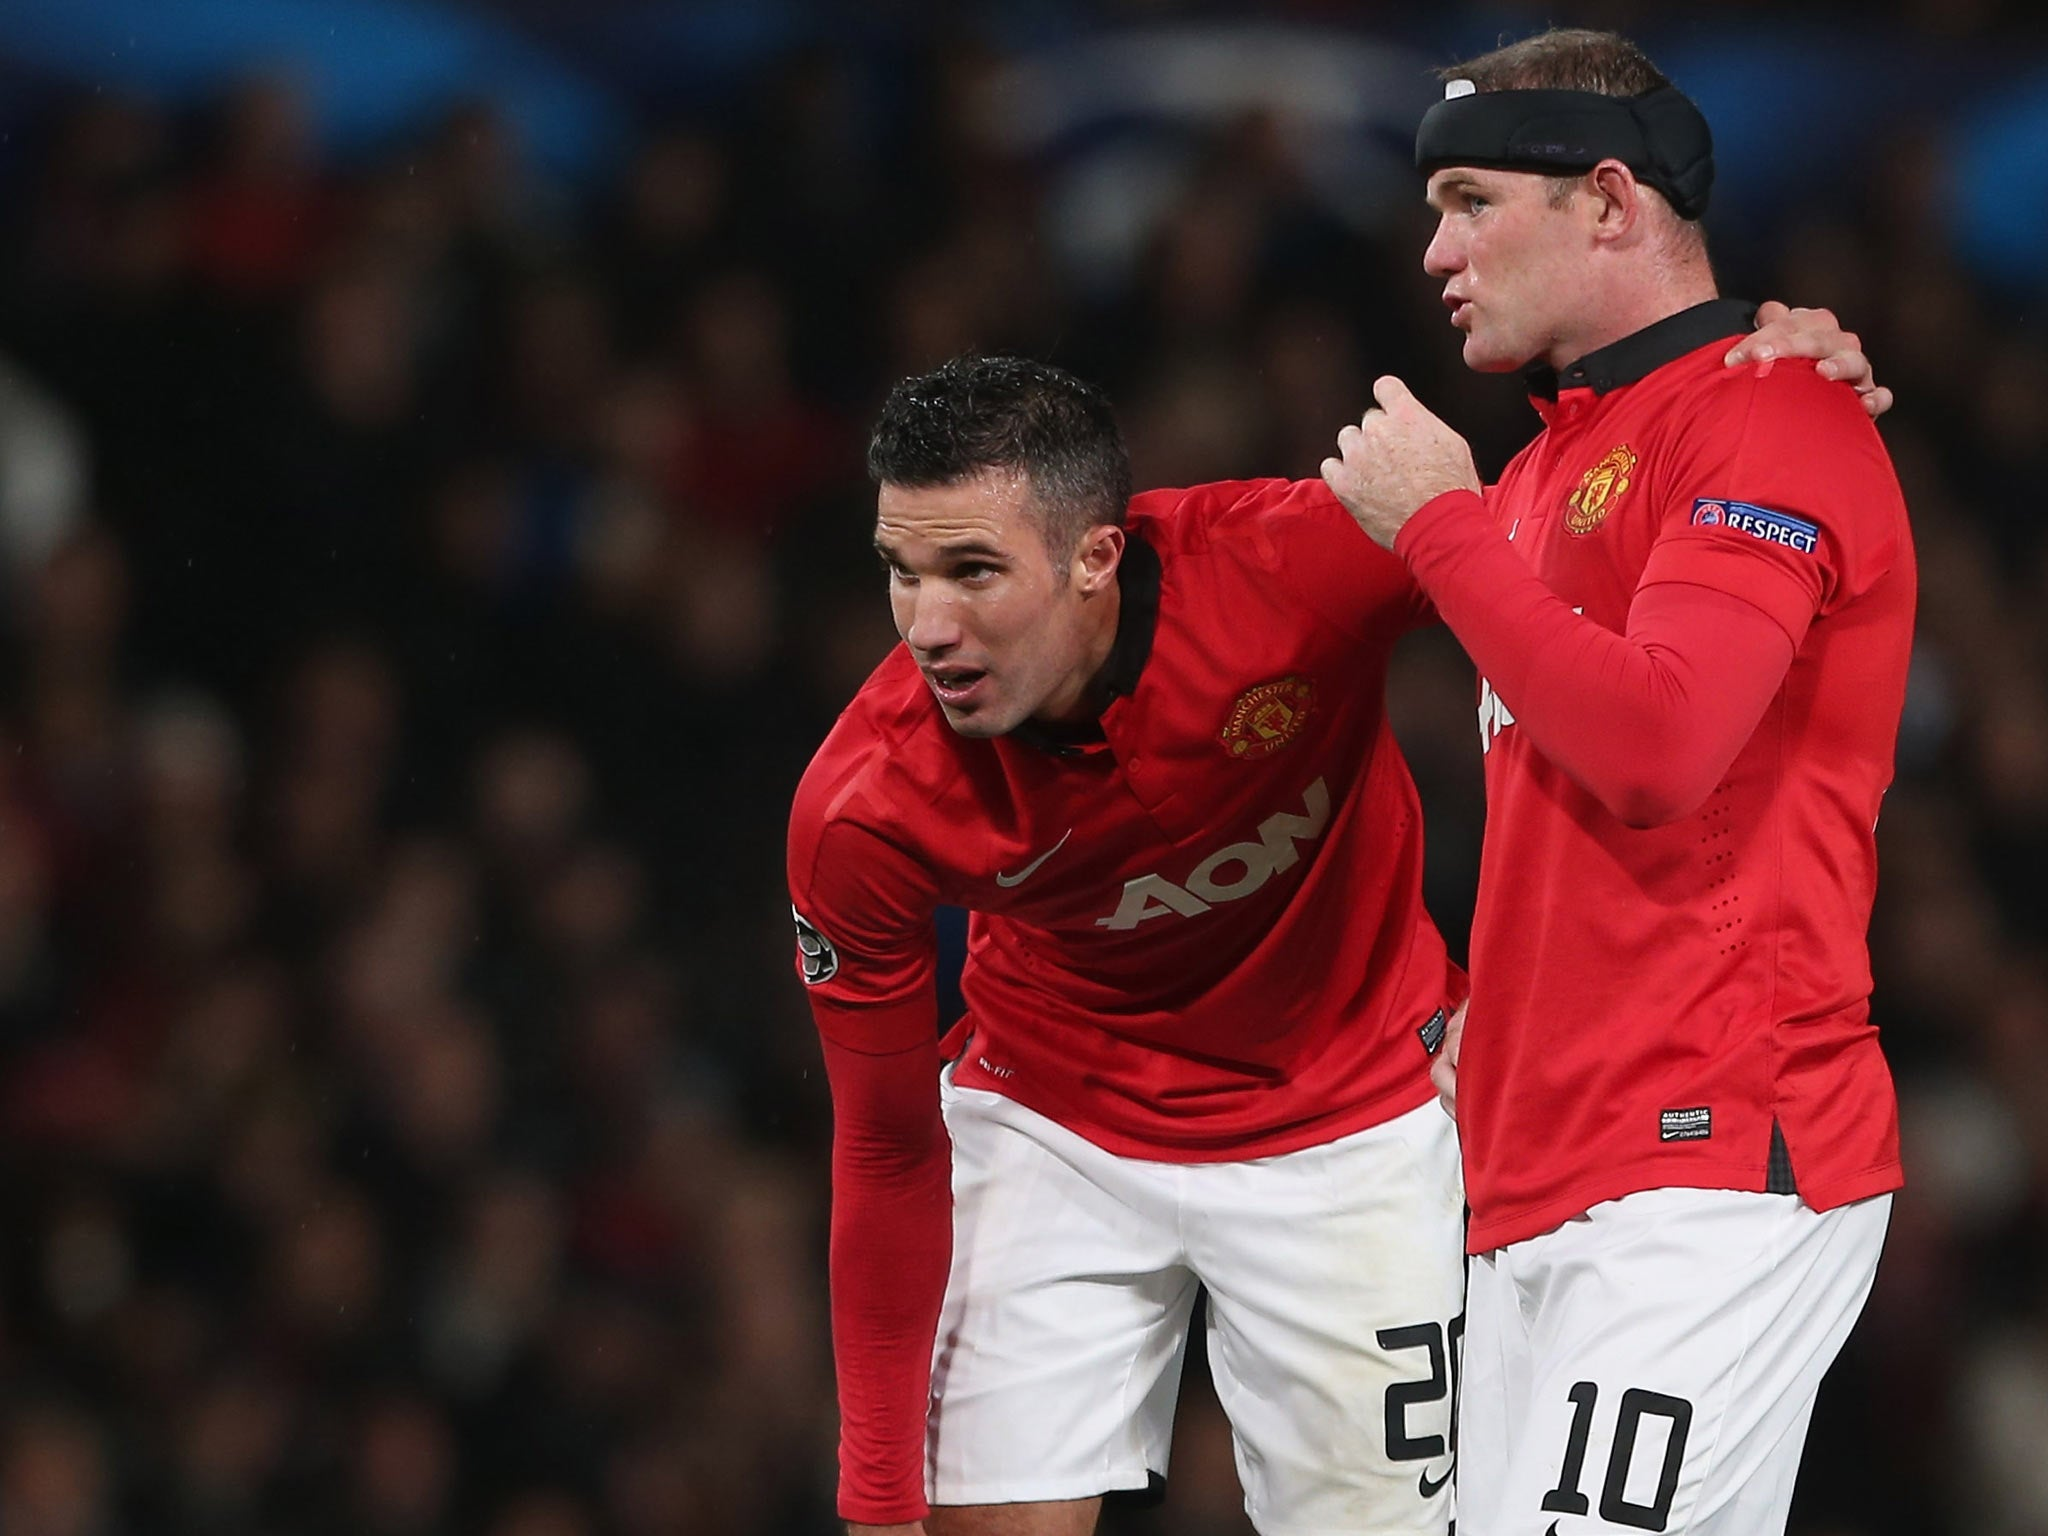 Robin van persie talks up importance of partnership with wayne robin van persie talks up importance of partnership with wayne rooney amid manchester united woes the independent fandeluxe Document